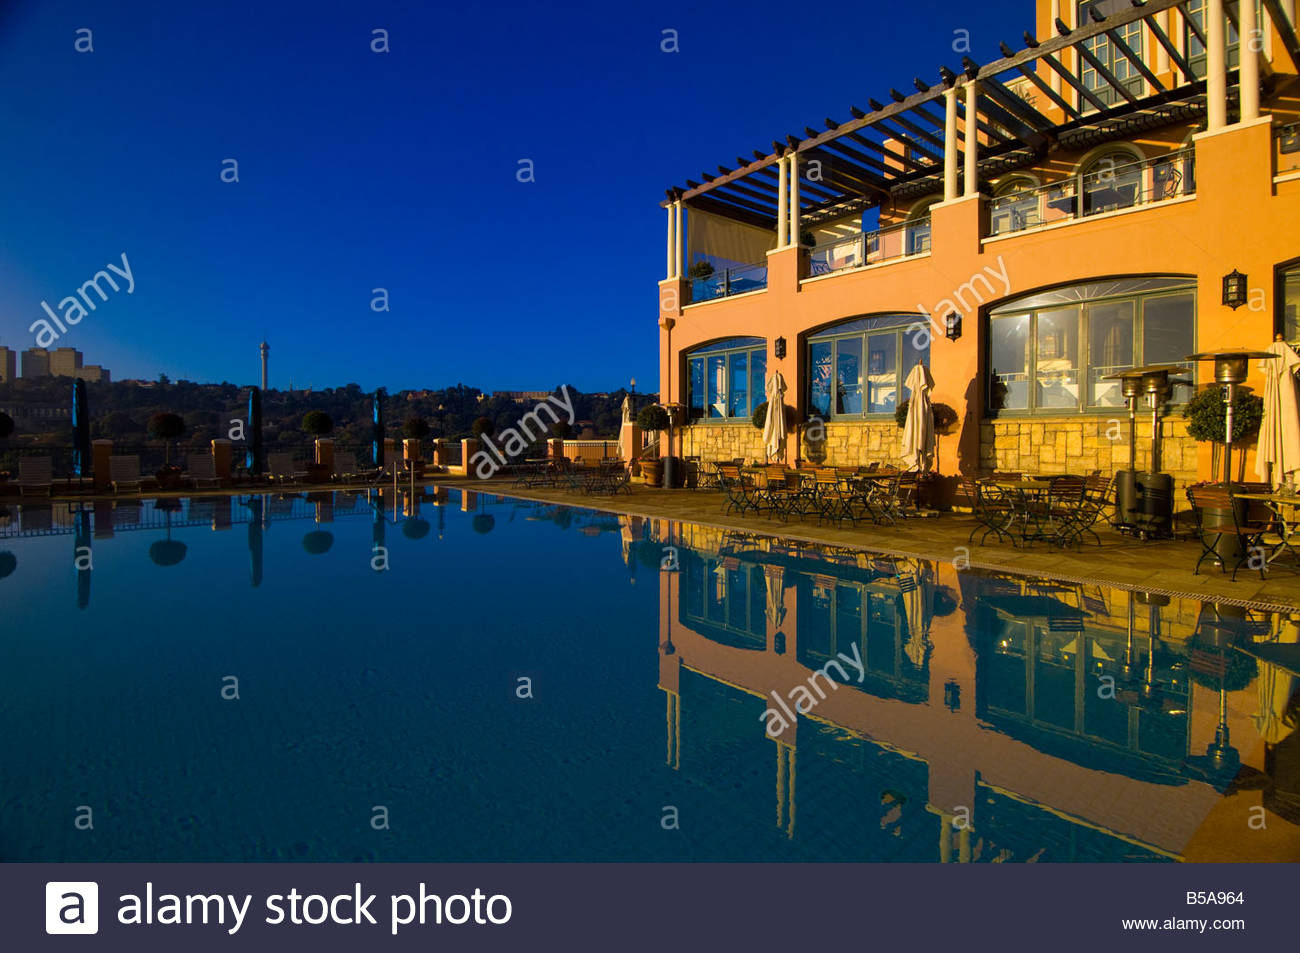 Swimming Pool The Westcliff Hotel Johannesburg South Africa Stock Photo Royalty Free Image